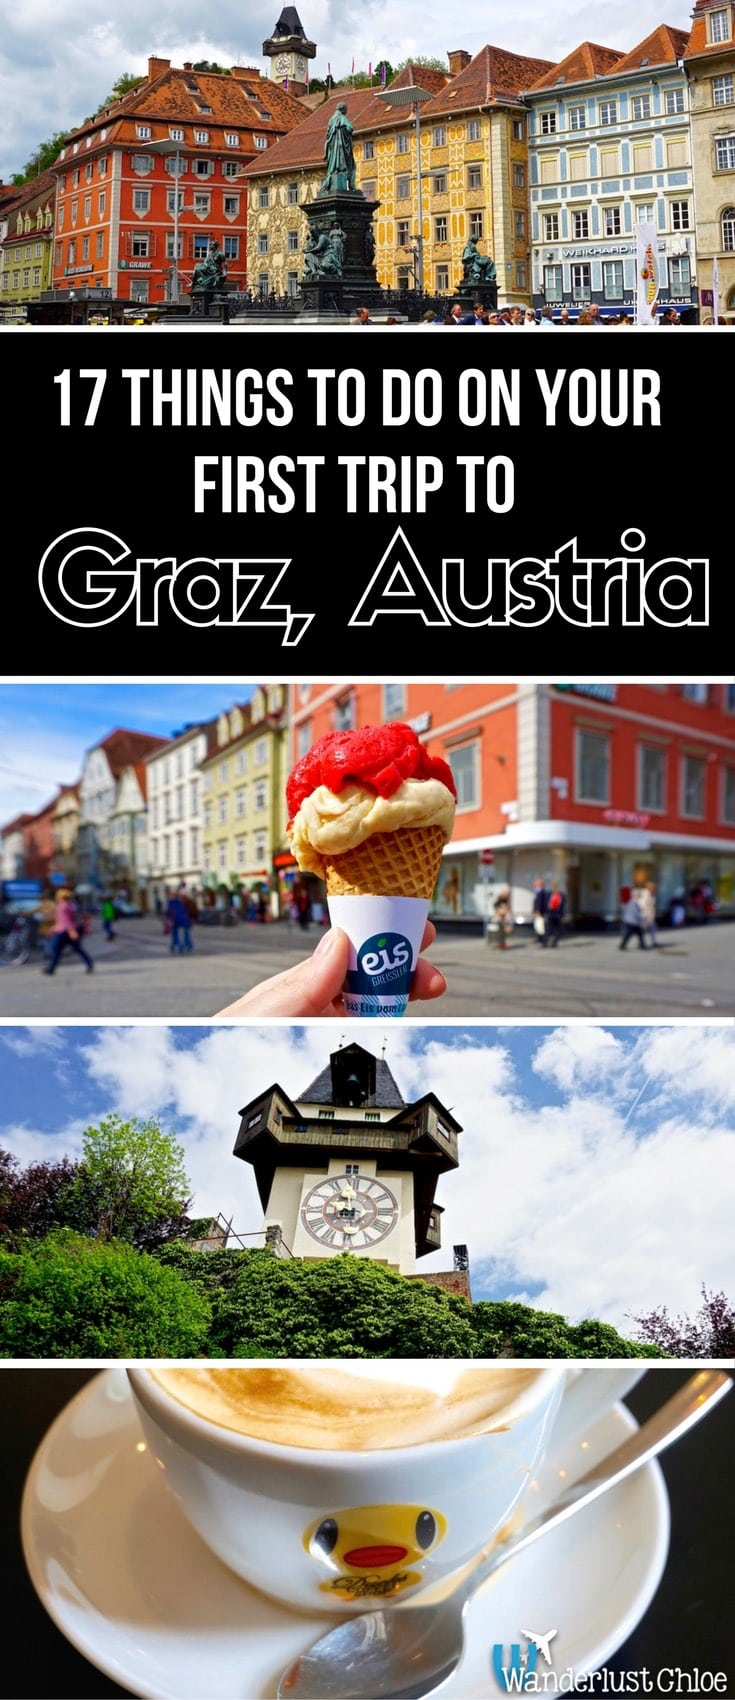 17 Things To Do In Graz, Austria